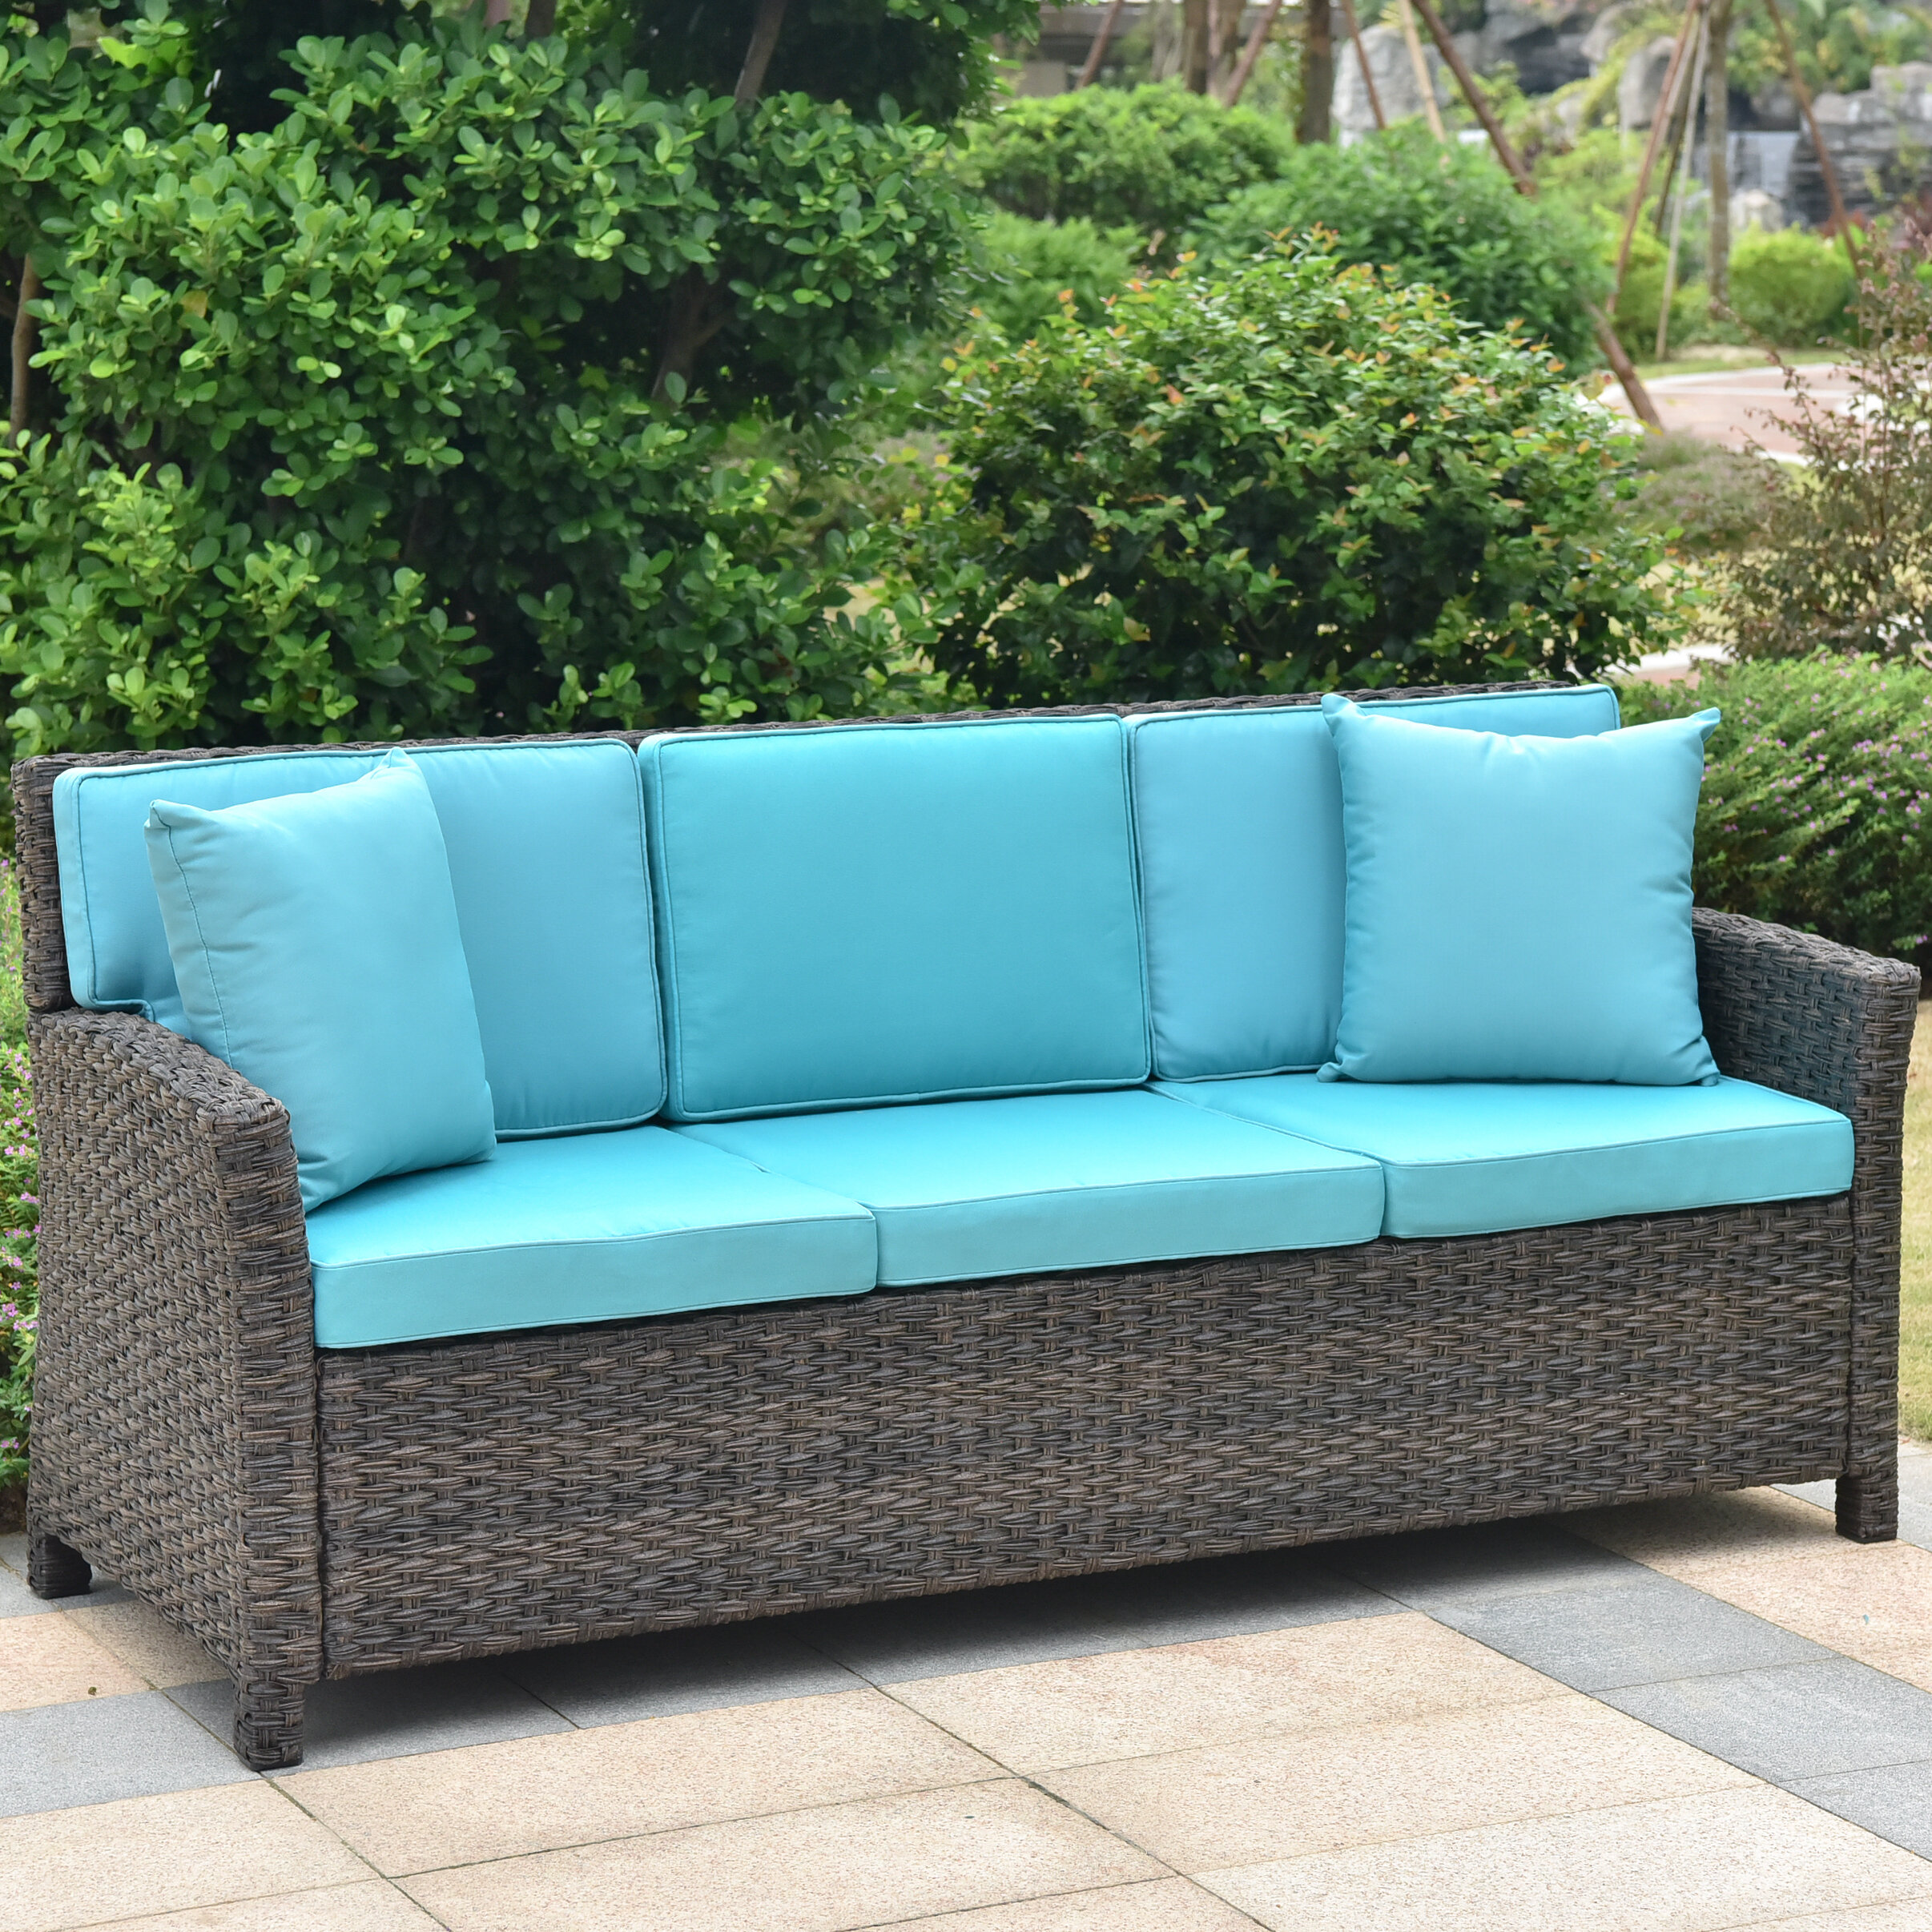 Attirant Red Barrel Studio Deanna Resin Wicker Patio Sofa With Cushions U0026 Reviews |  Wayfair